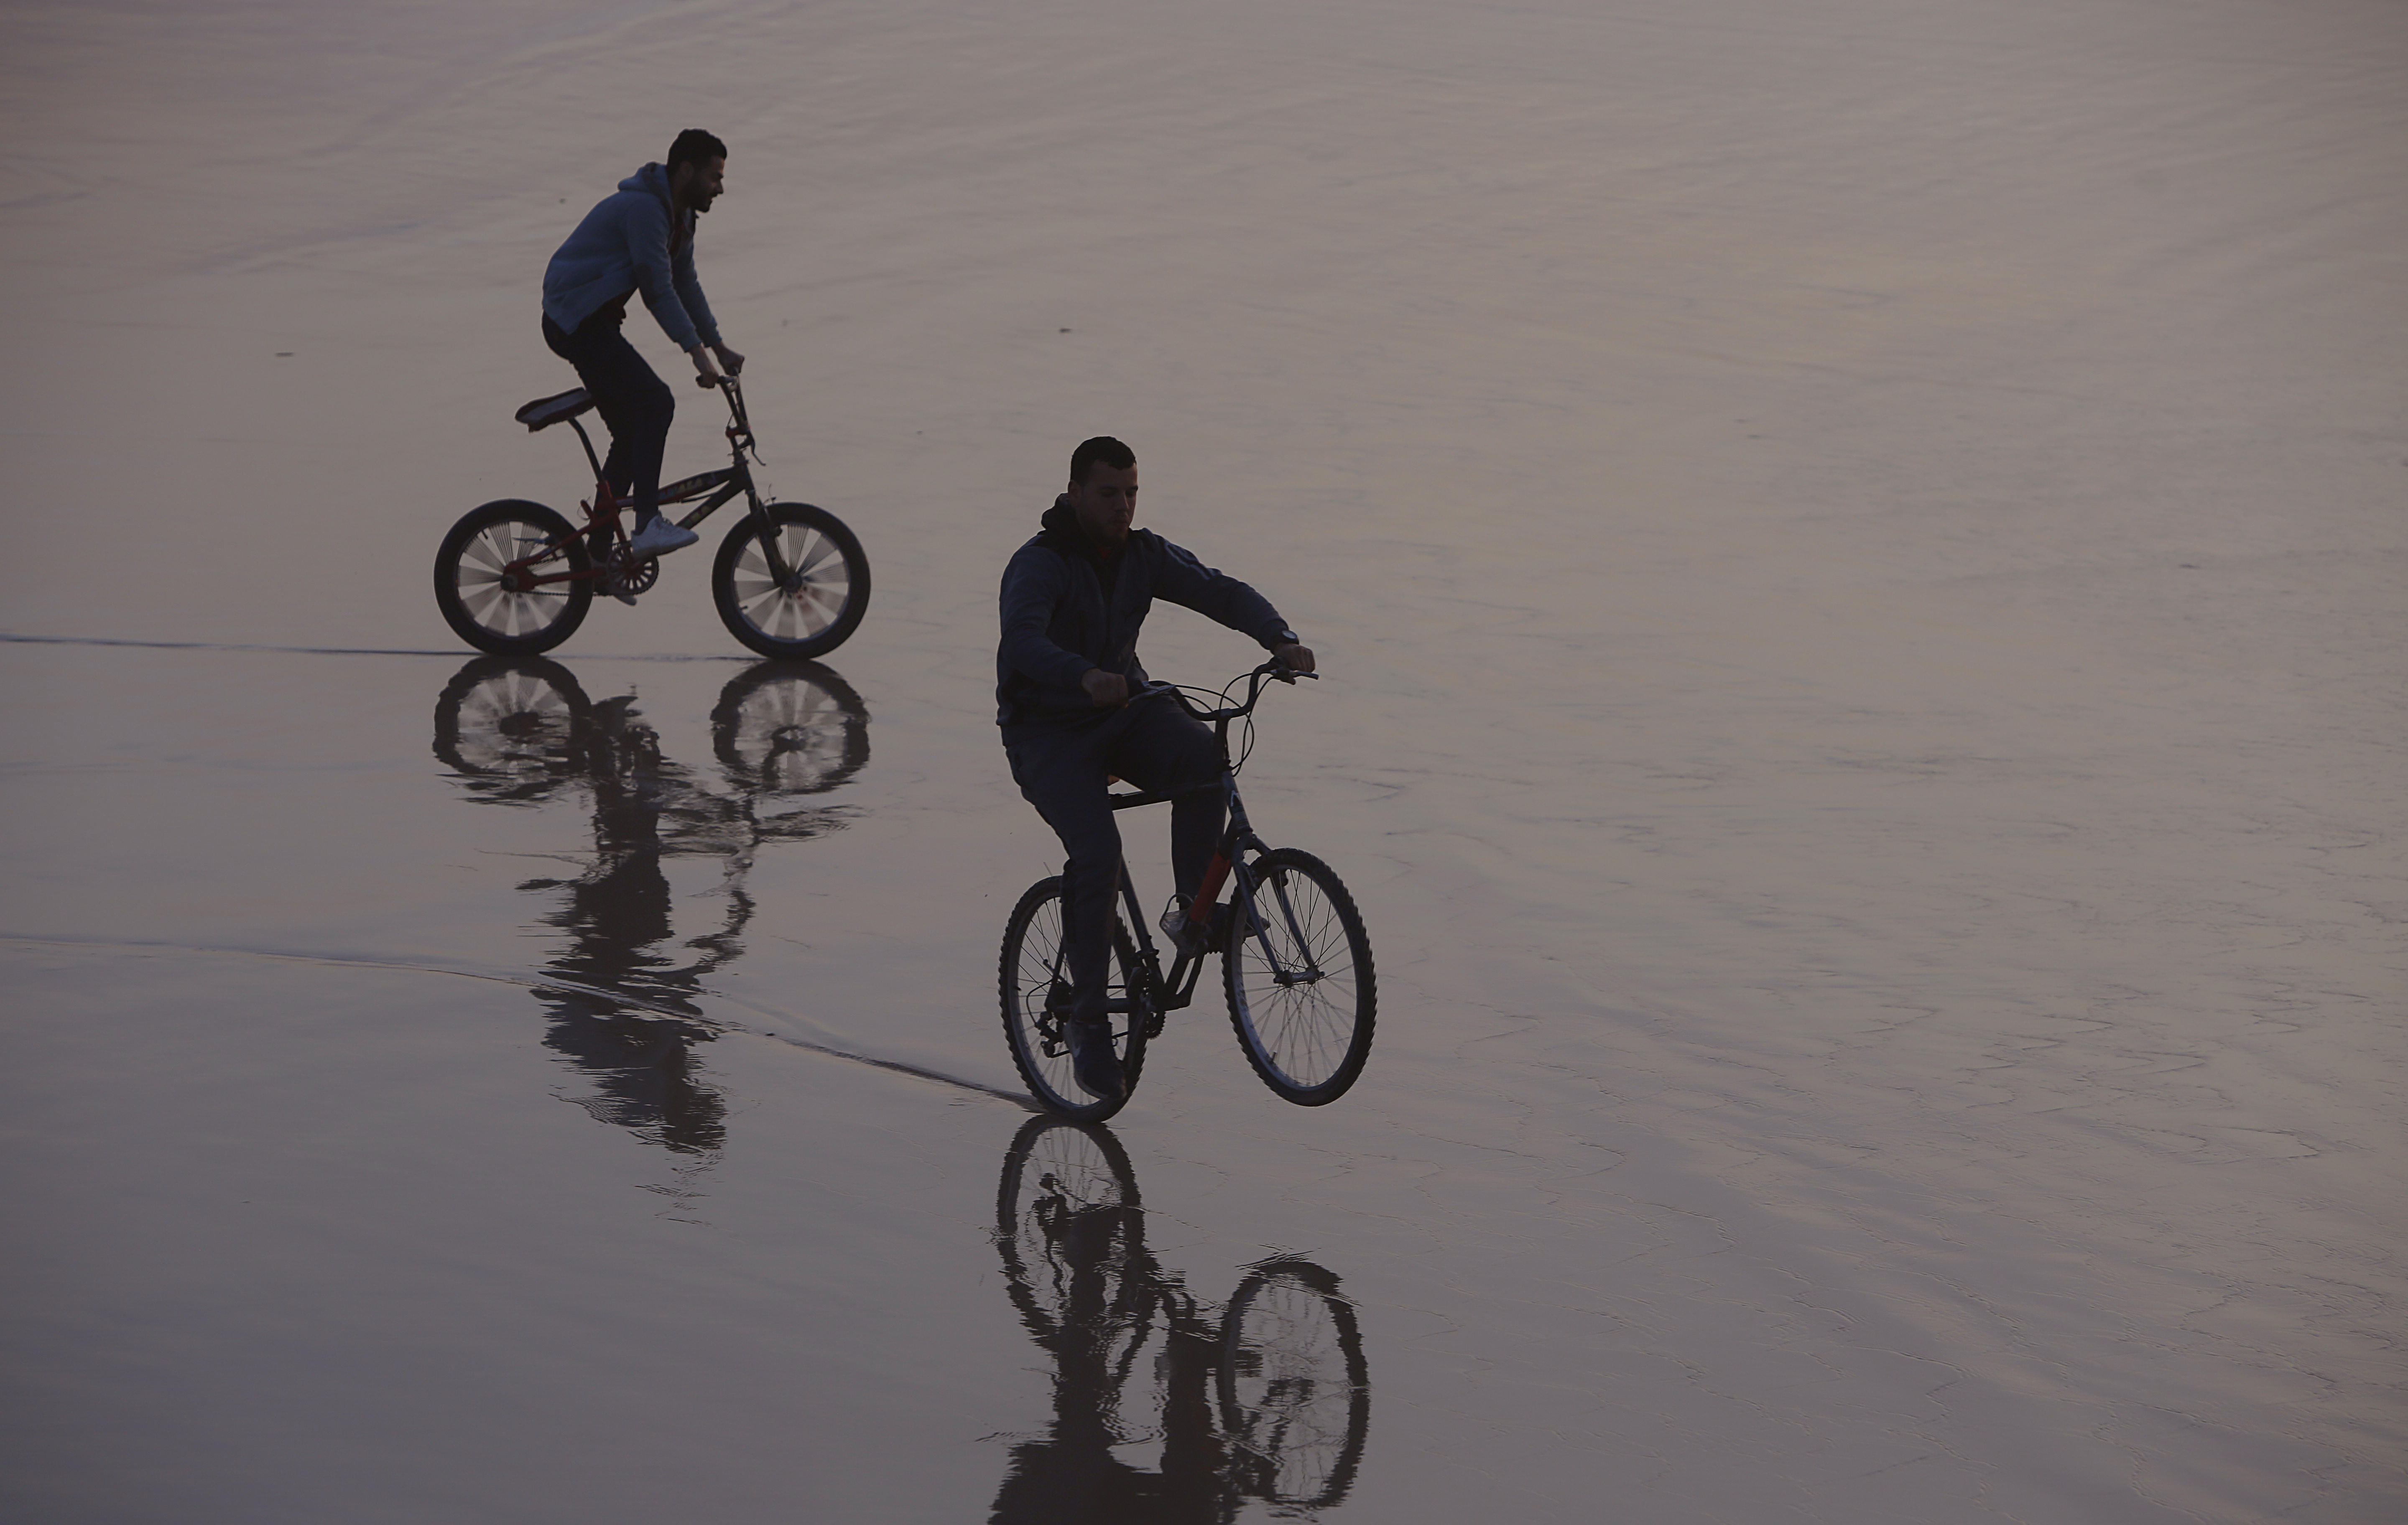 Palestinians ride their bicycles during the sunset at the beach, in Gaza City, Saturday, Feb.22, 2020. The beach is one of the few open public spaces in this densely populated city. (AP Photo/Hatem Moussa)